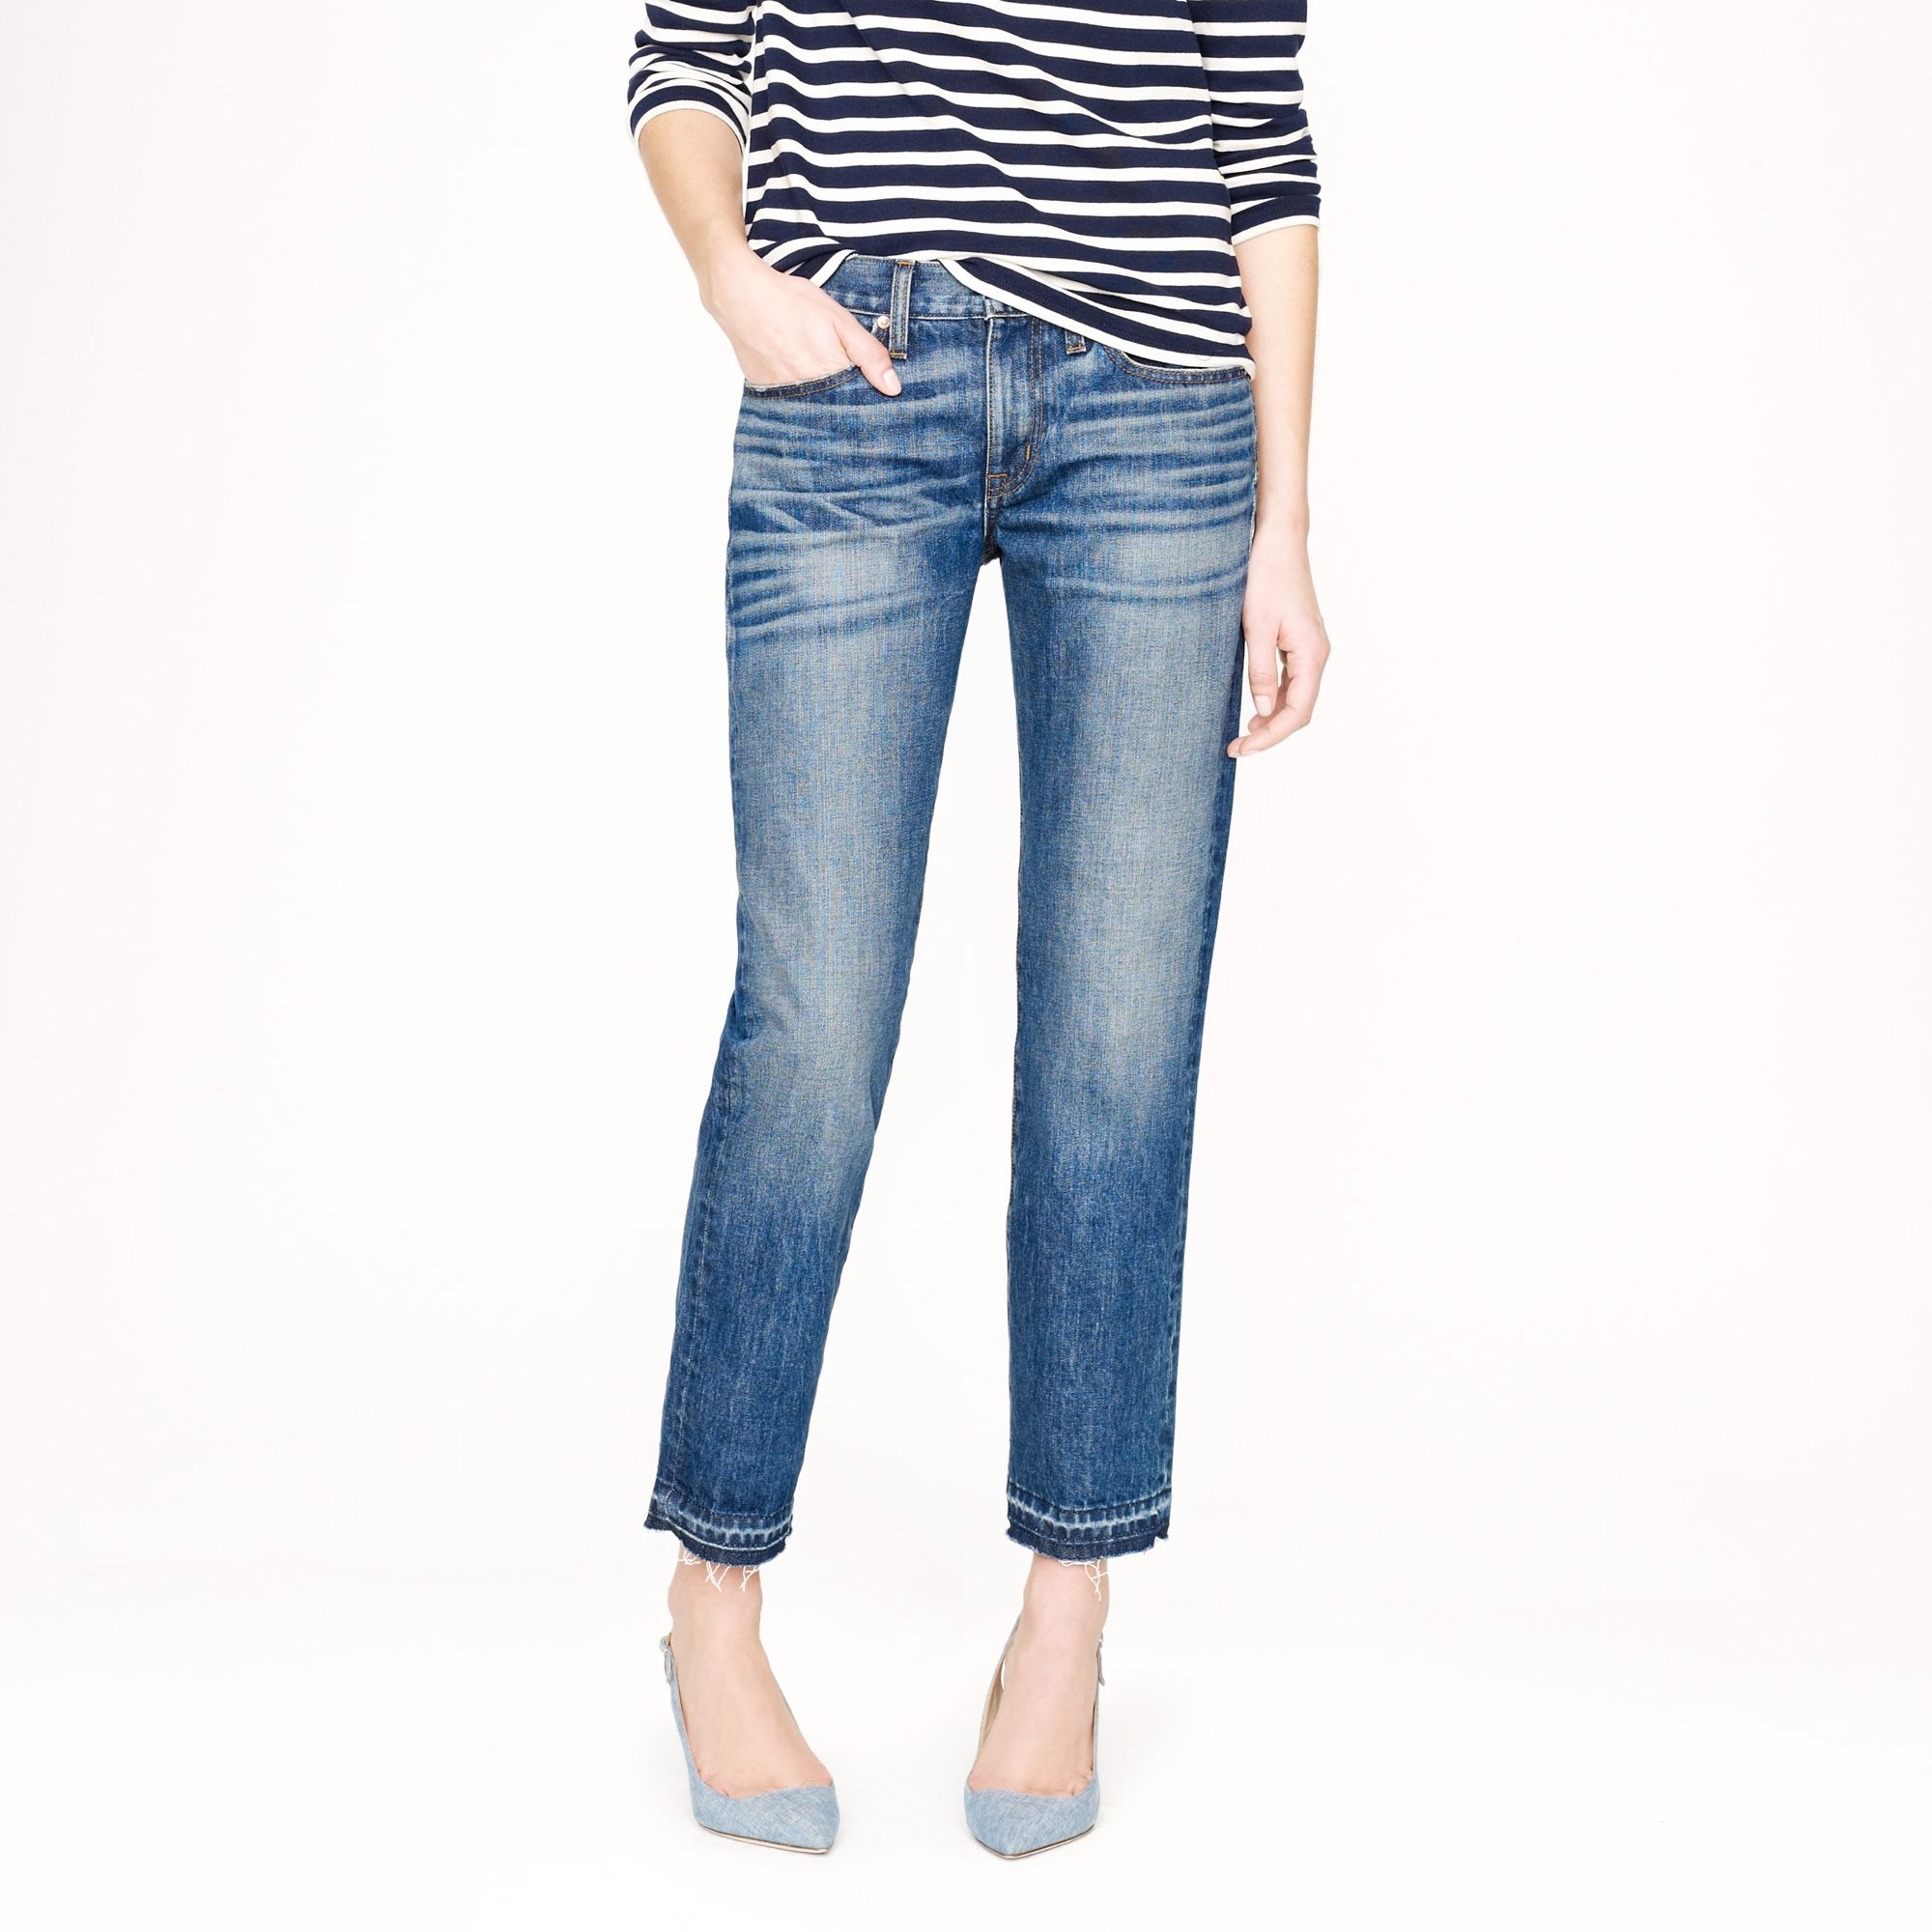 J.crew Point Sur Vintage Cropped Jean In Griffin Wash in Blue | Lyst